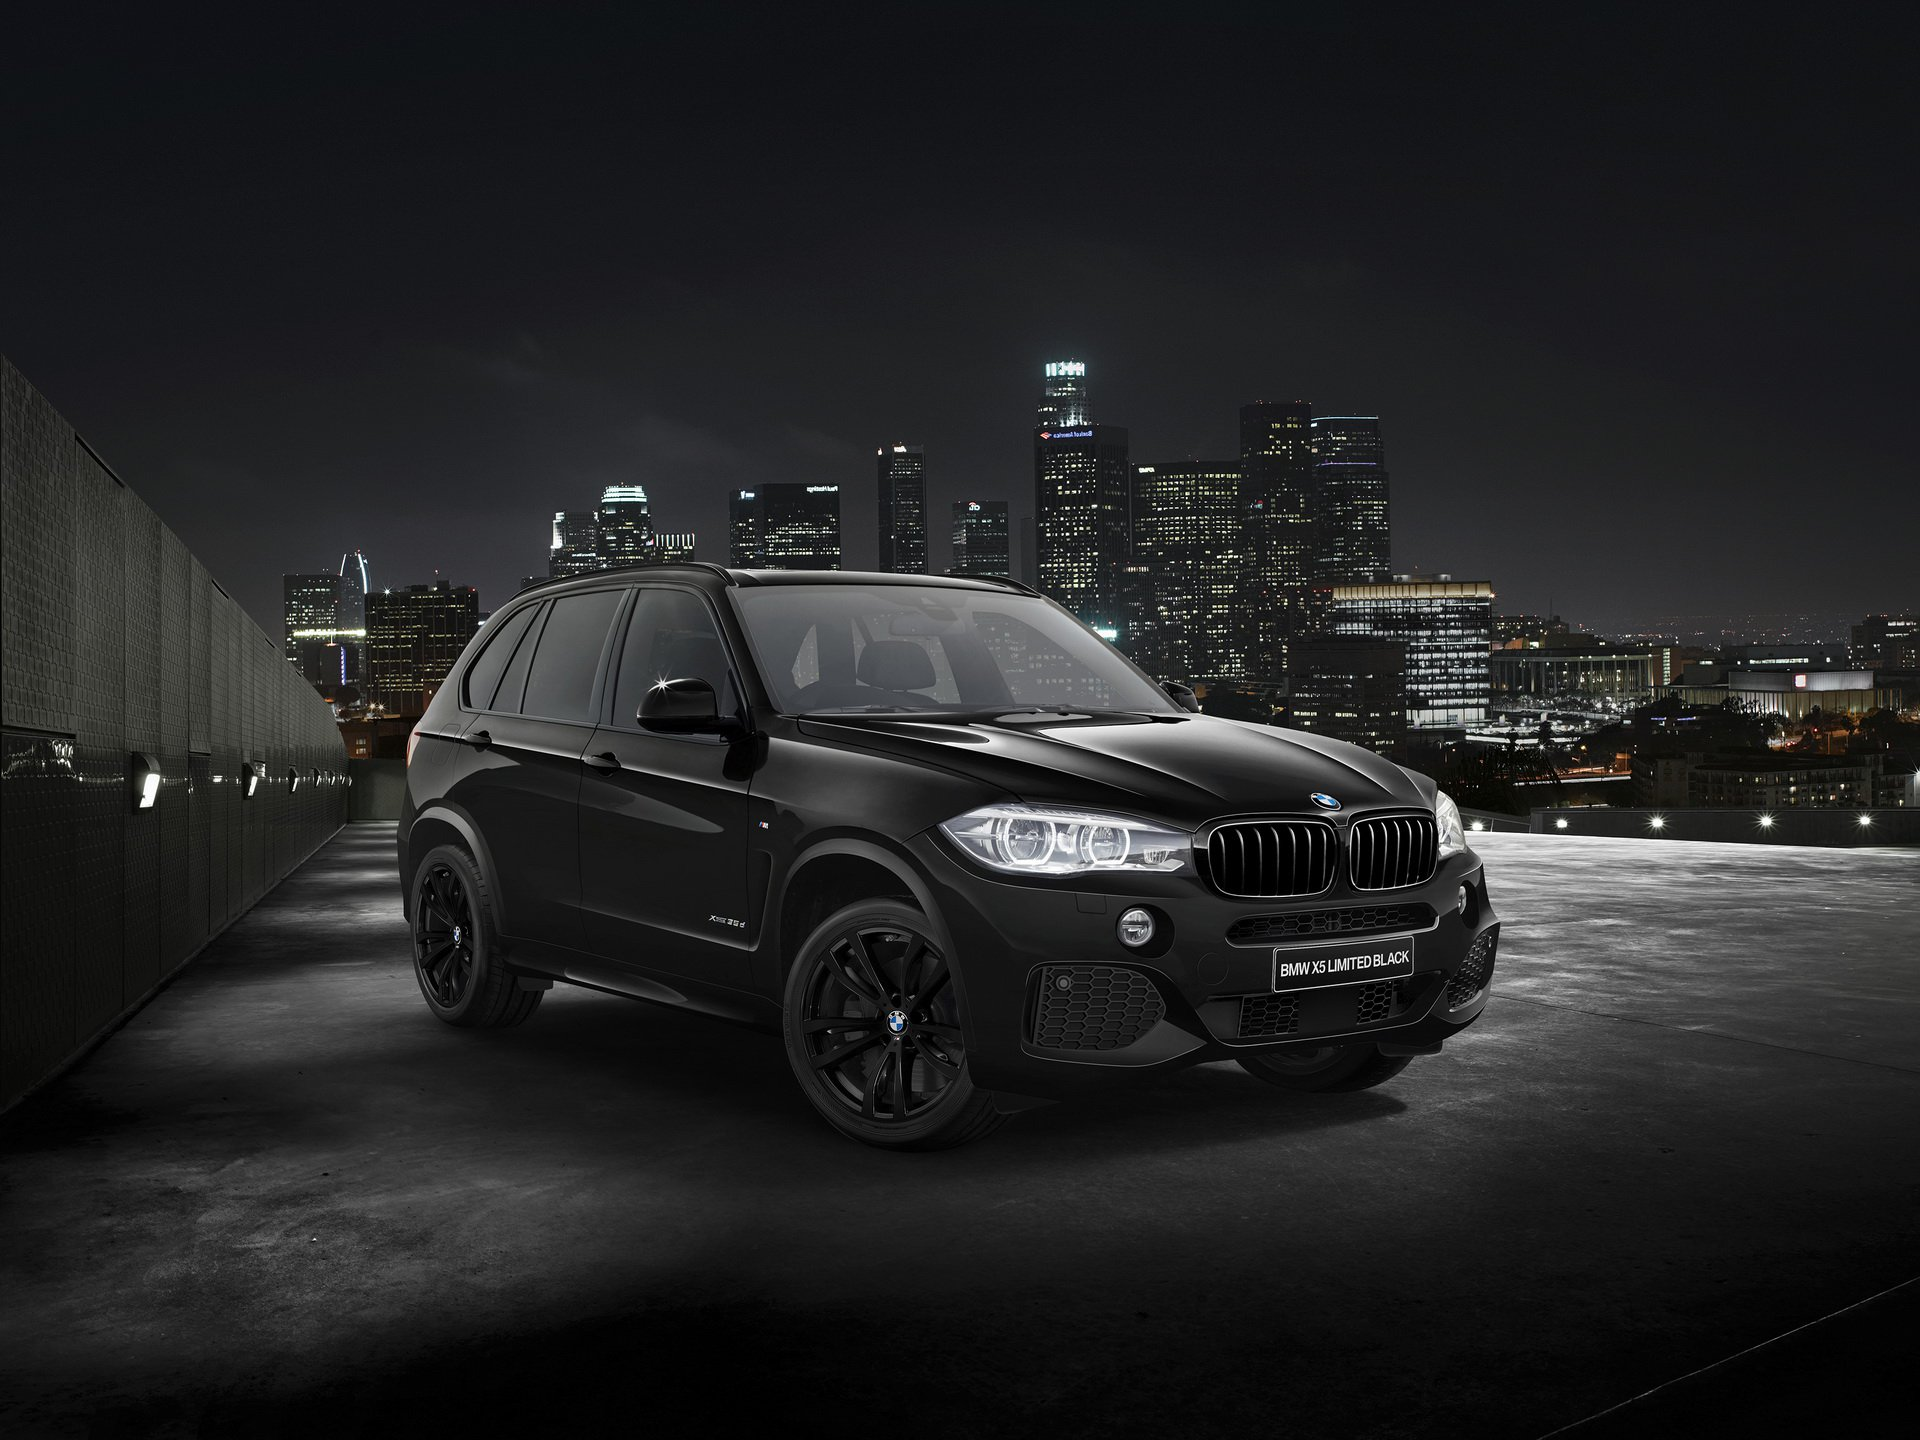 Bmw Japan Announces Special Edition Bmw X5 Models As Farewell For F15 Range